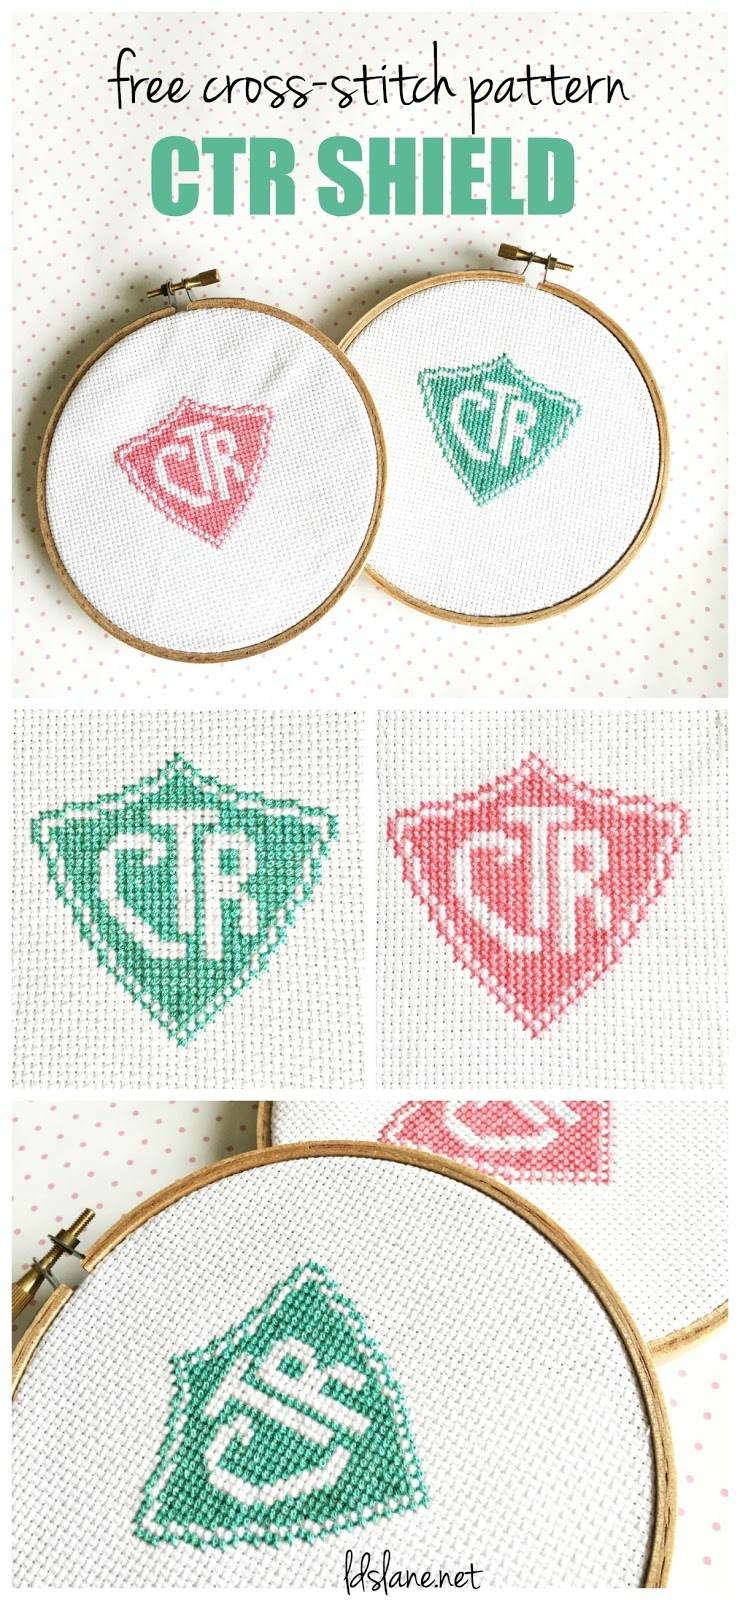 free cross stitch pattern ctr shield